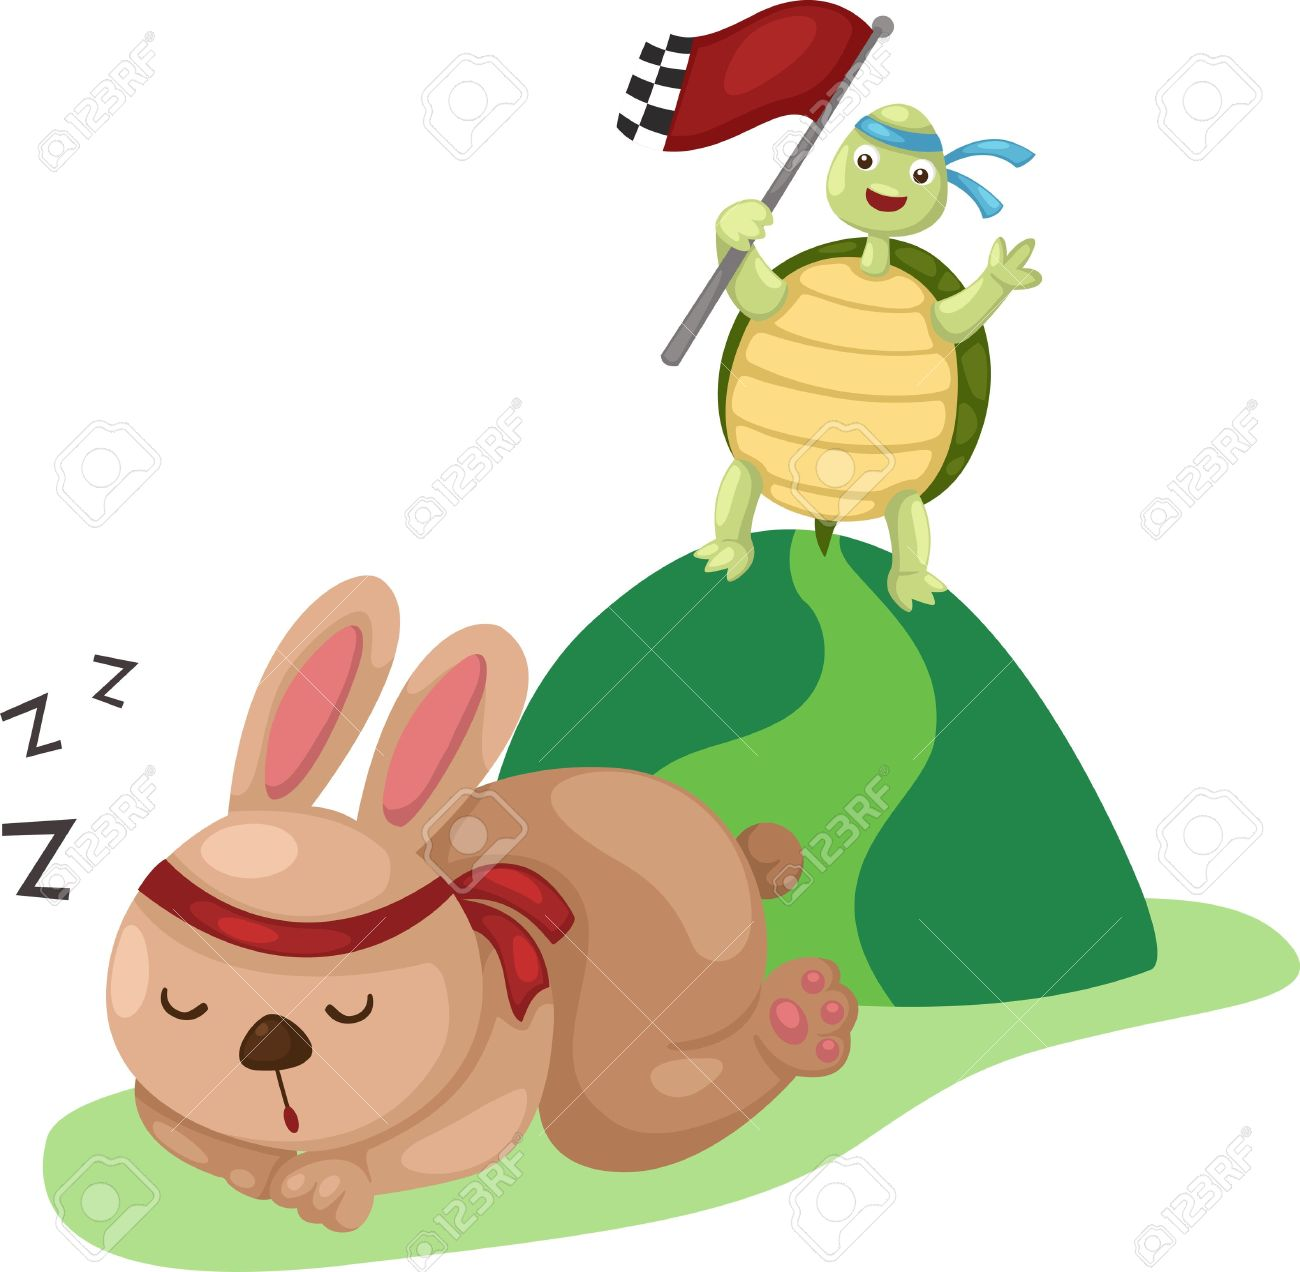 Illustration Of Turtle And Rabbit Running A Race Royalty Free.